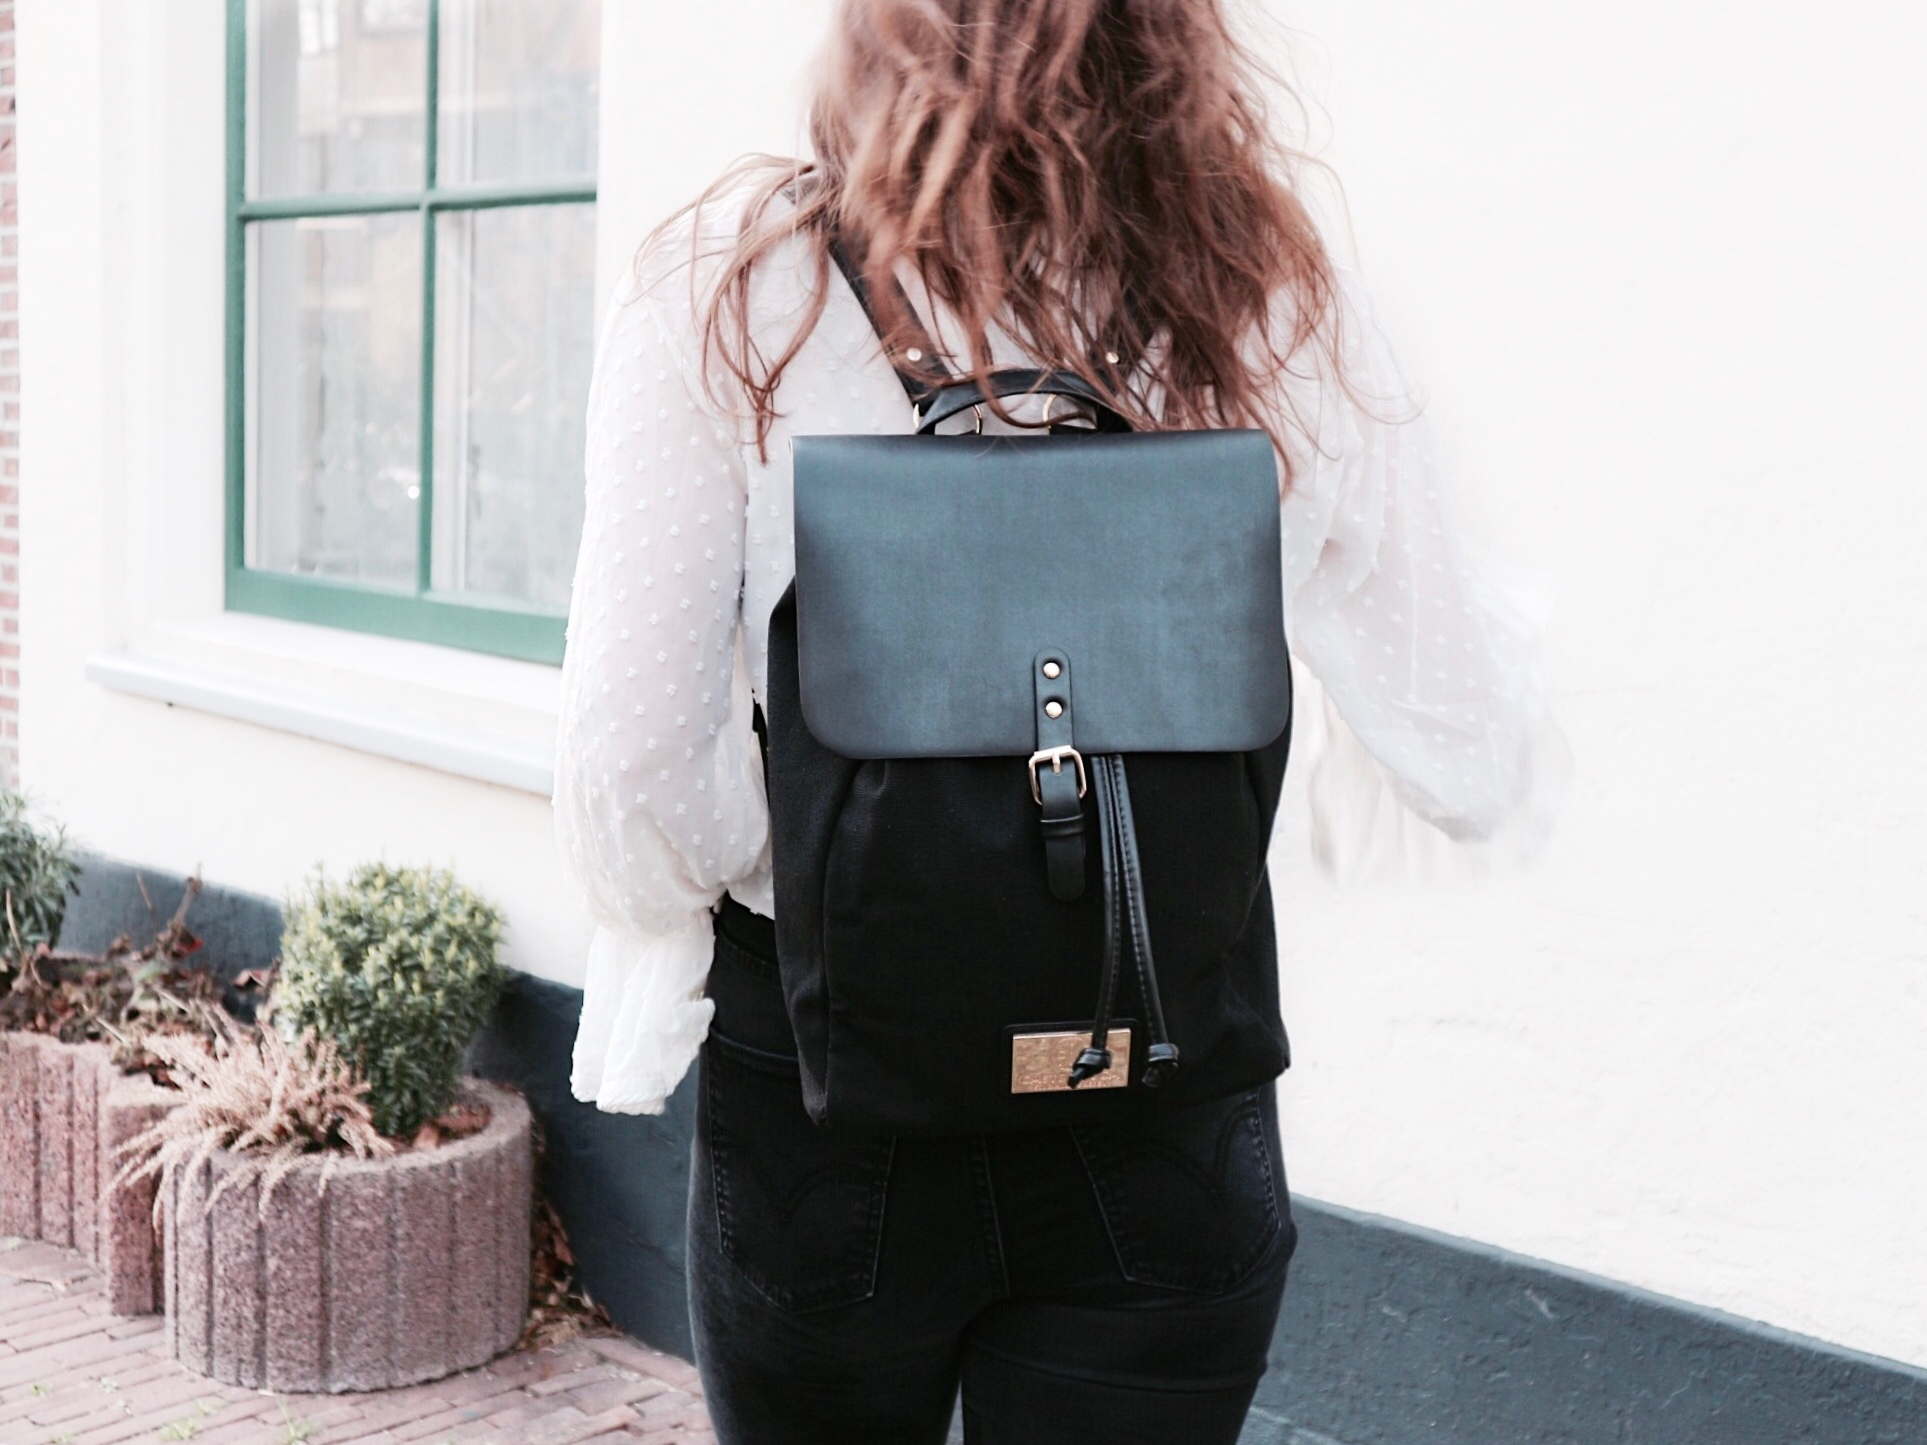 Gaston Luga Backpack Outfit Fashion Look OOTD